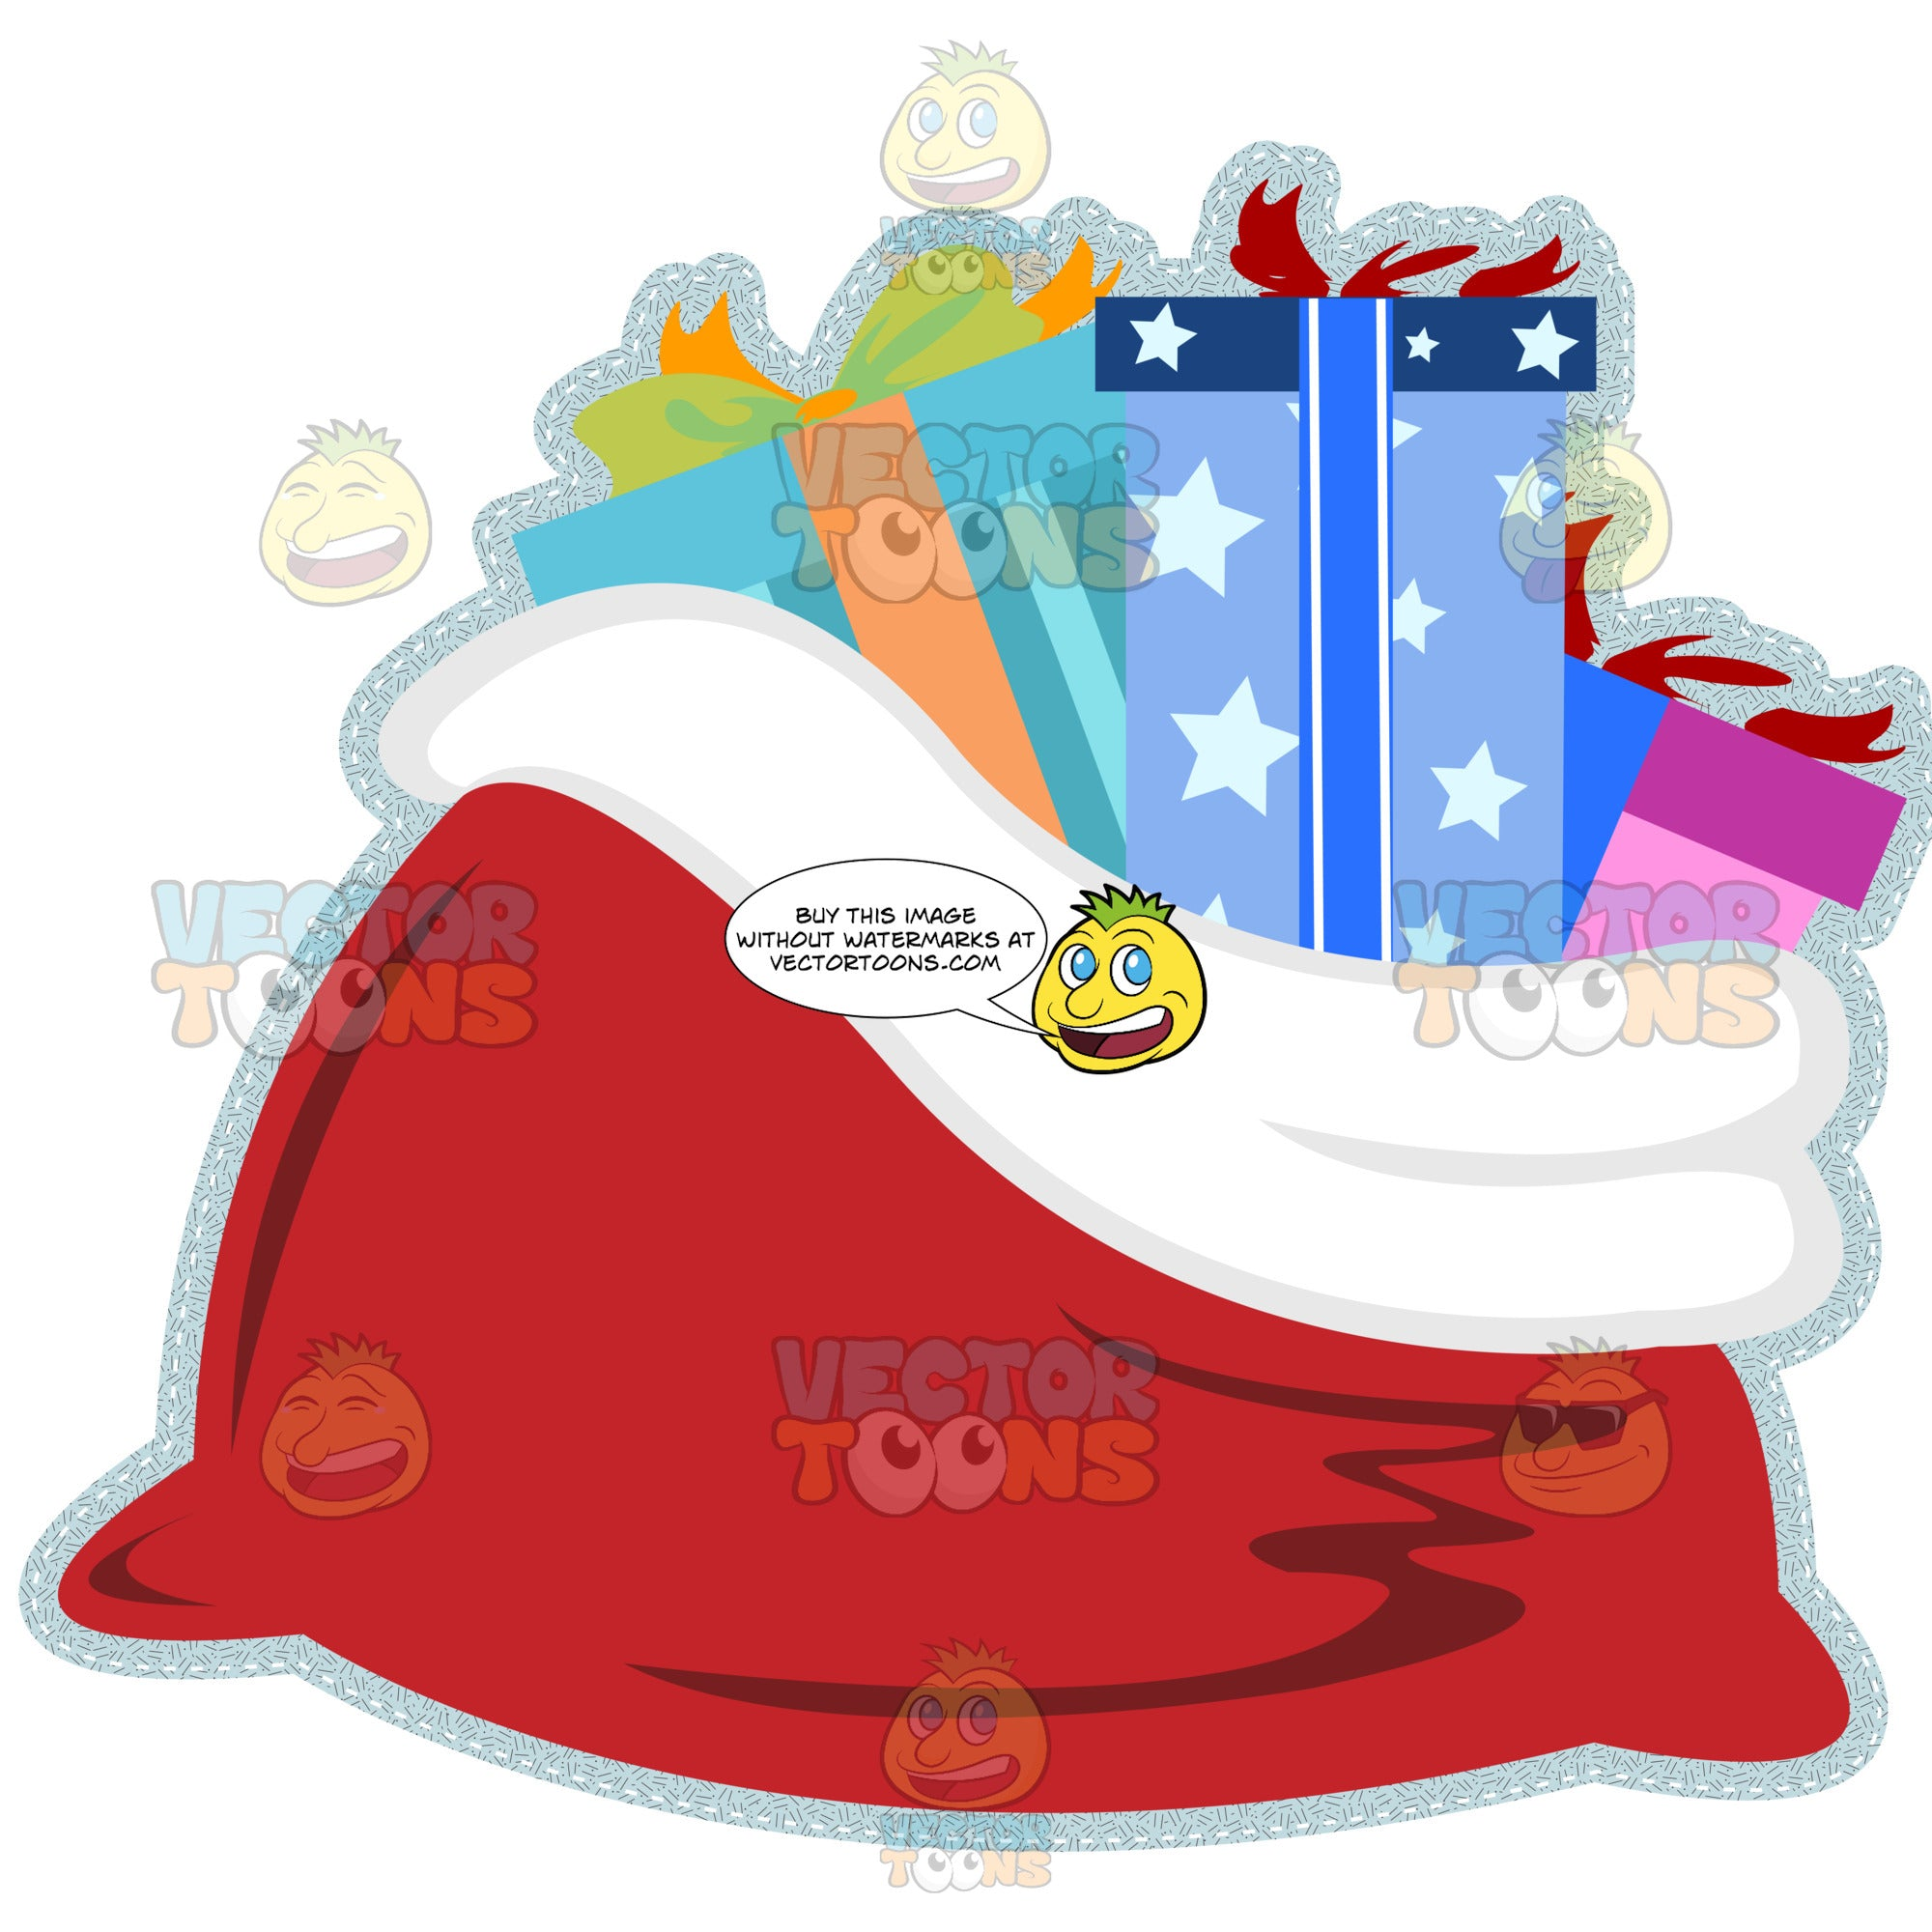 Red Bag Sack Filled With Boxed Gift Wrapped Christmas Presents